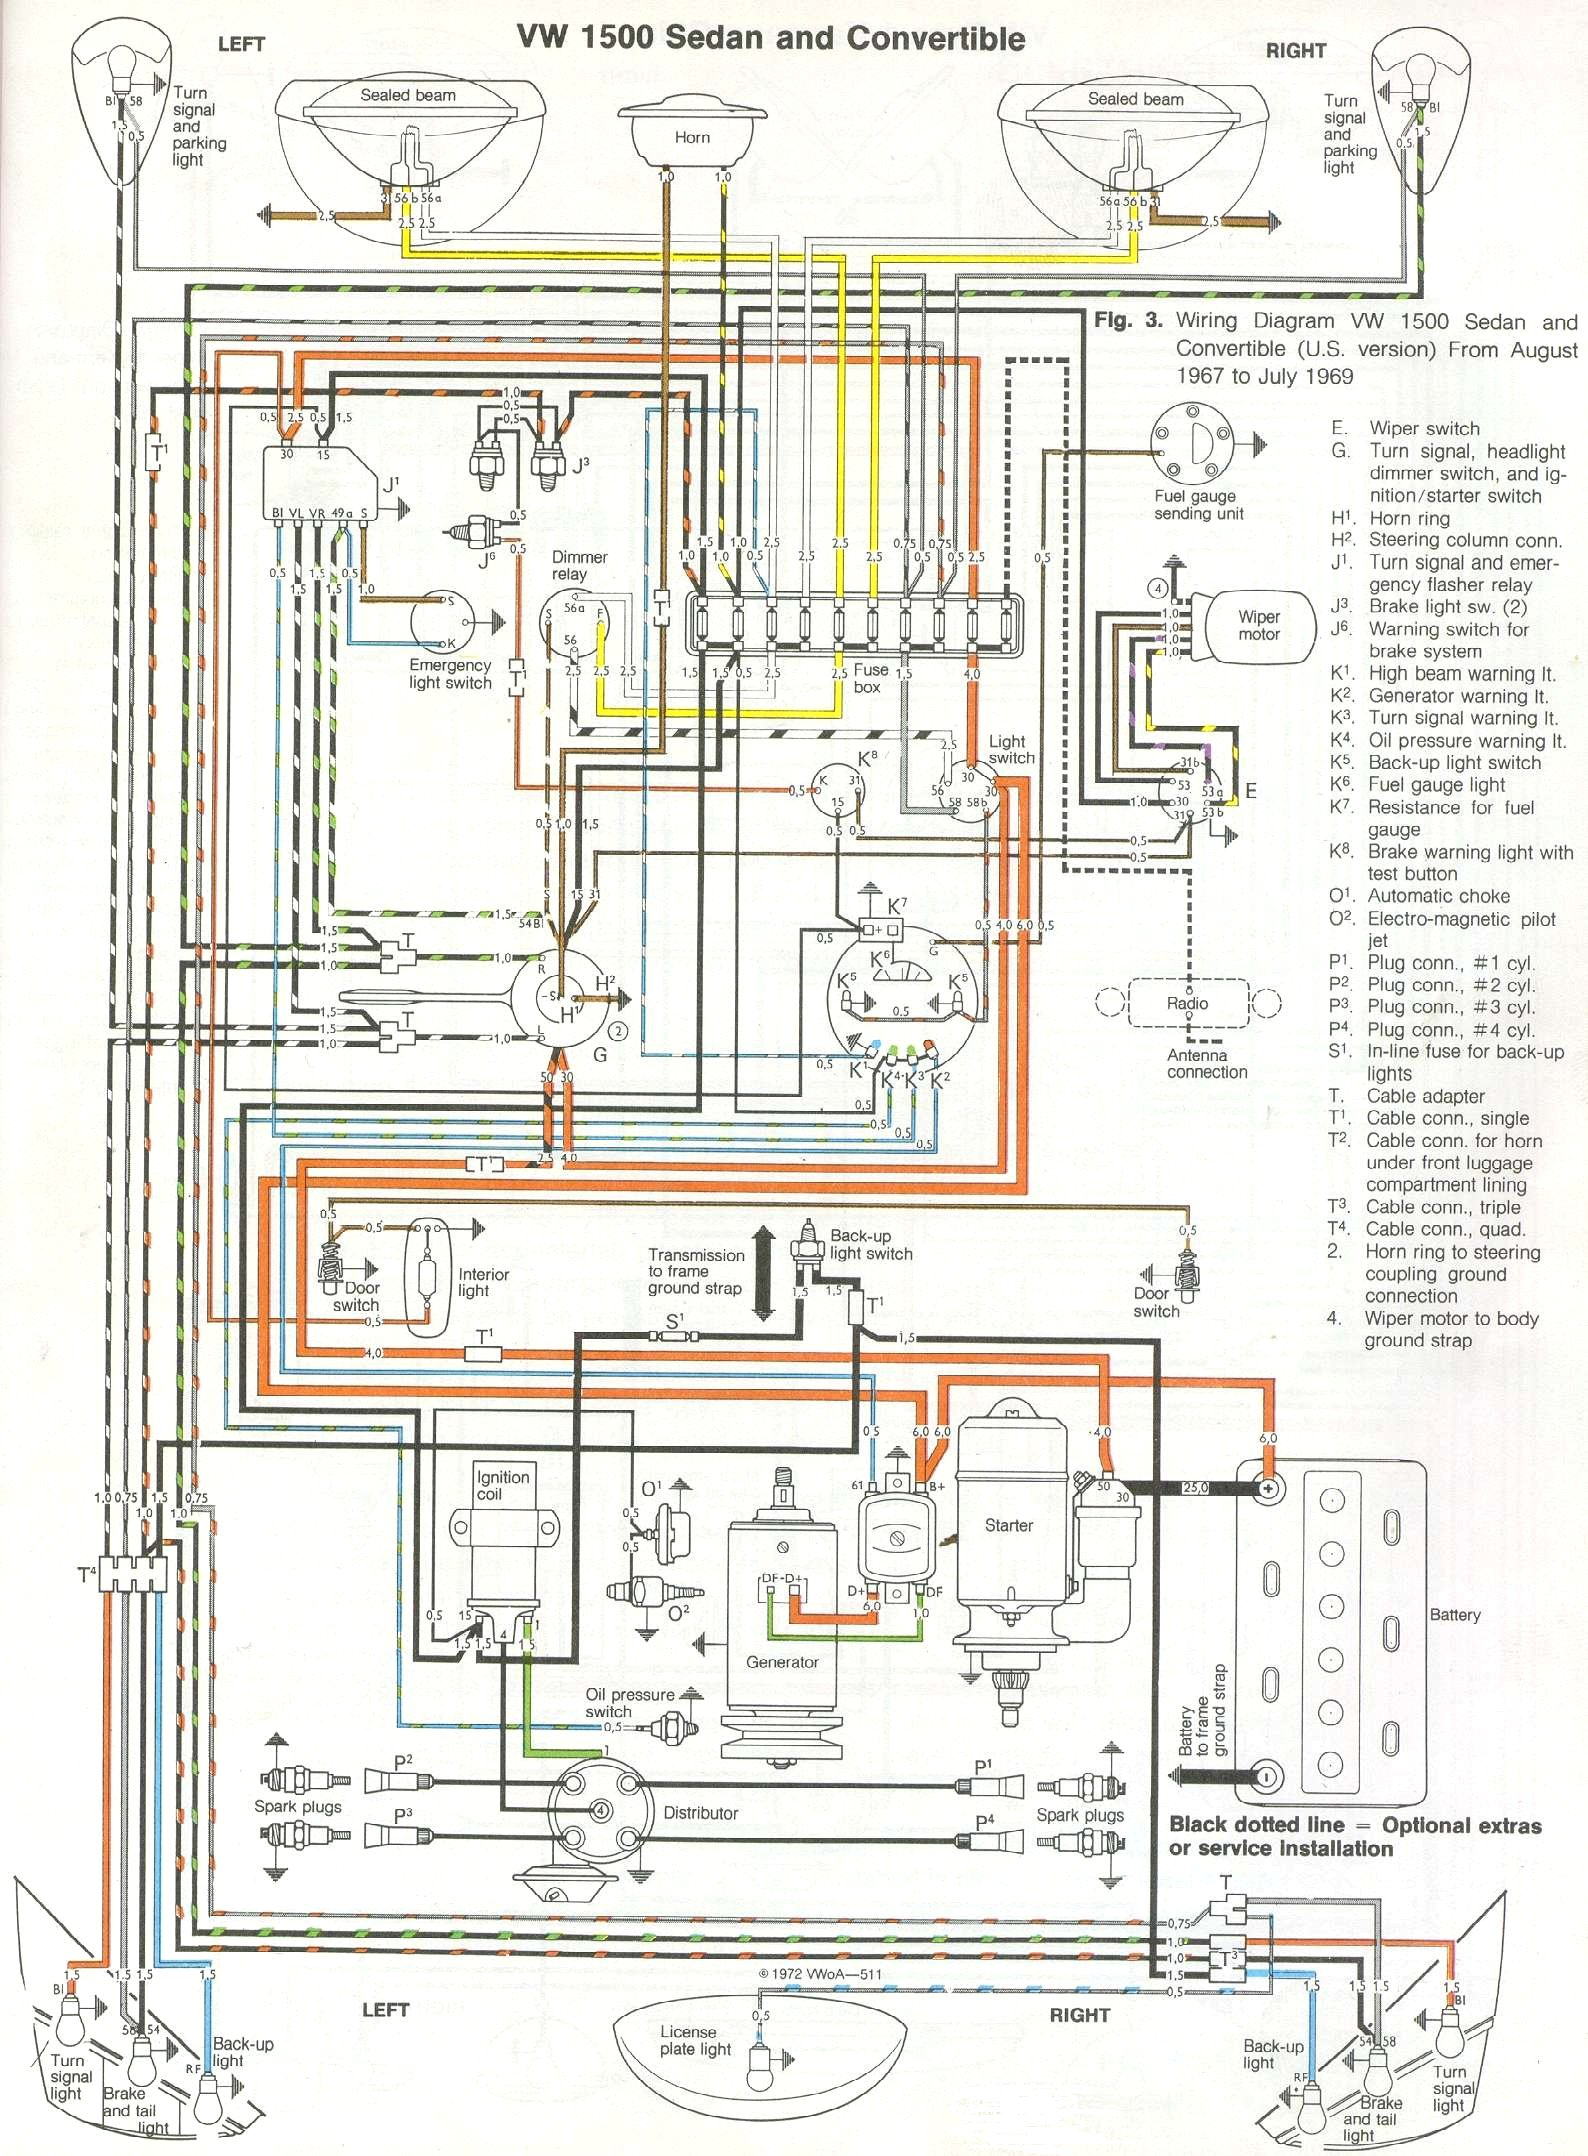 thesamba com type 1 wiring diagrams rh thesamba com 1974 VW Bus Wiring Diagram VW Manx Wiring Diagrams